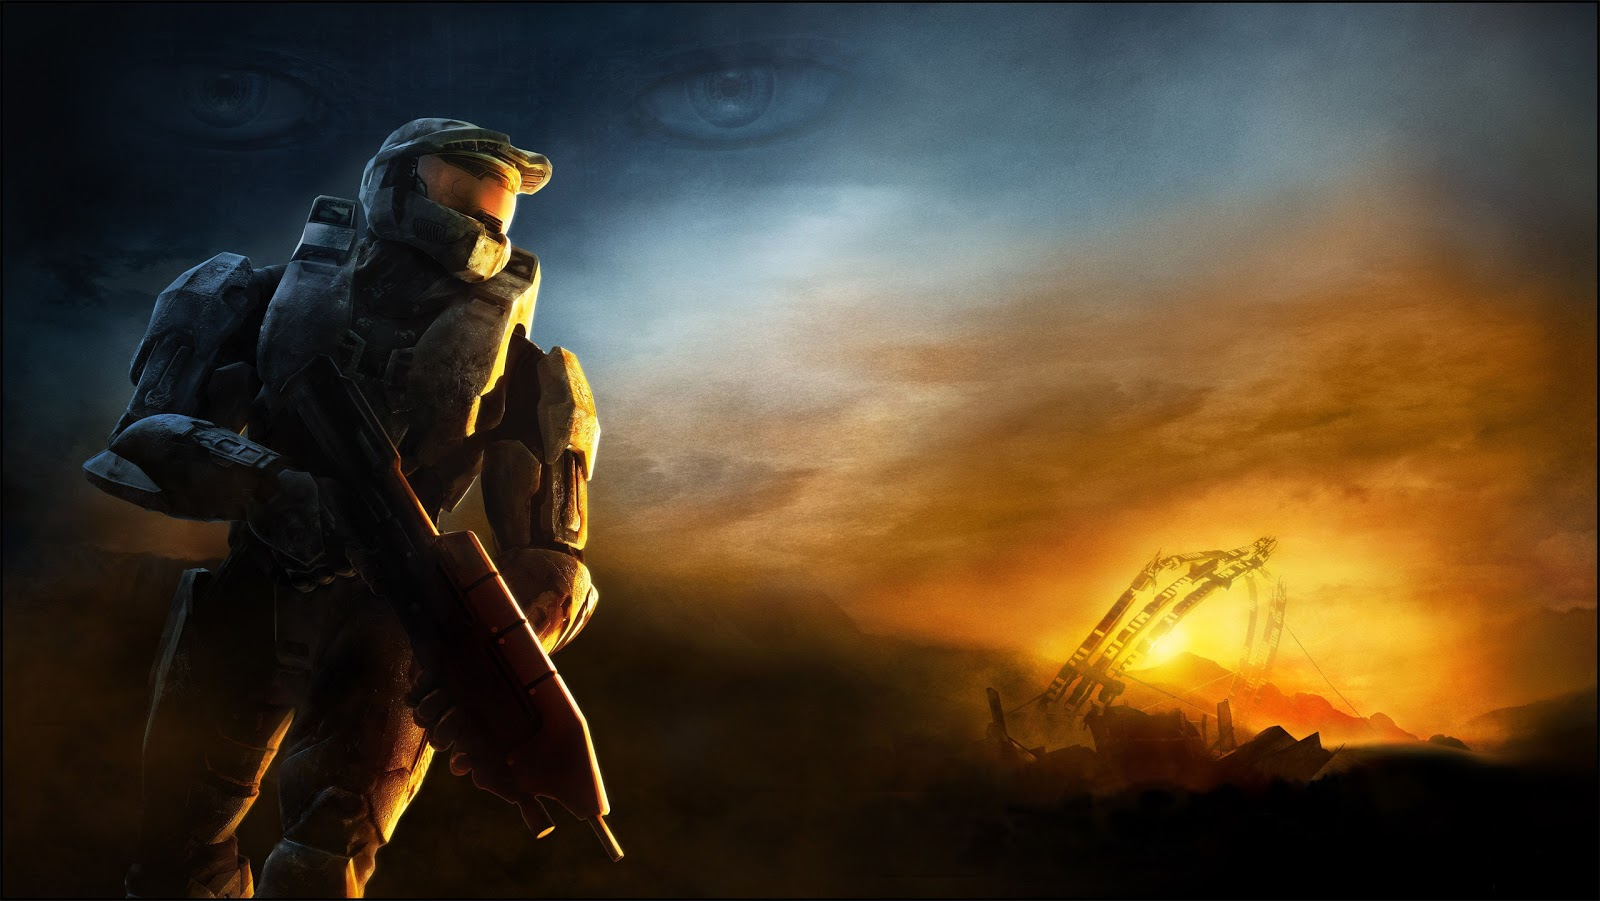 Halo Reach Wallpaper 1600x901